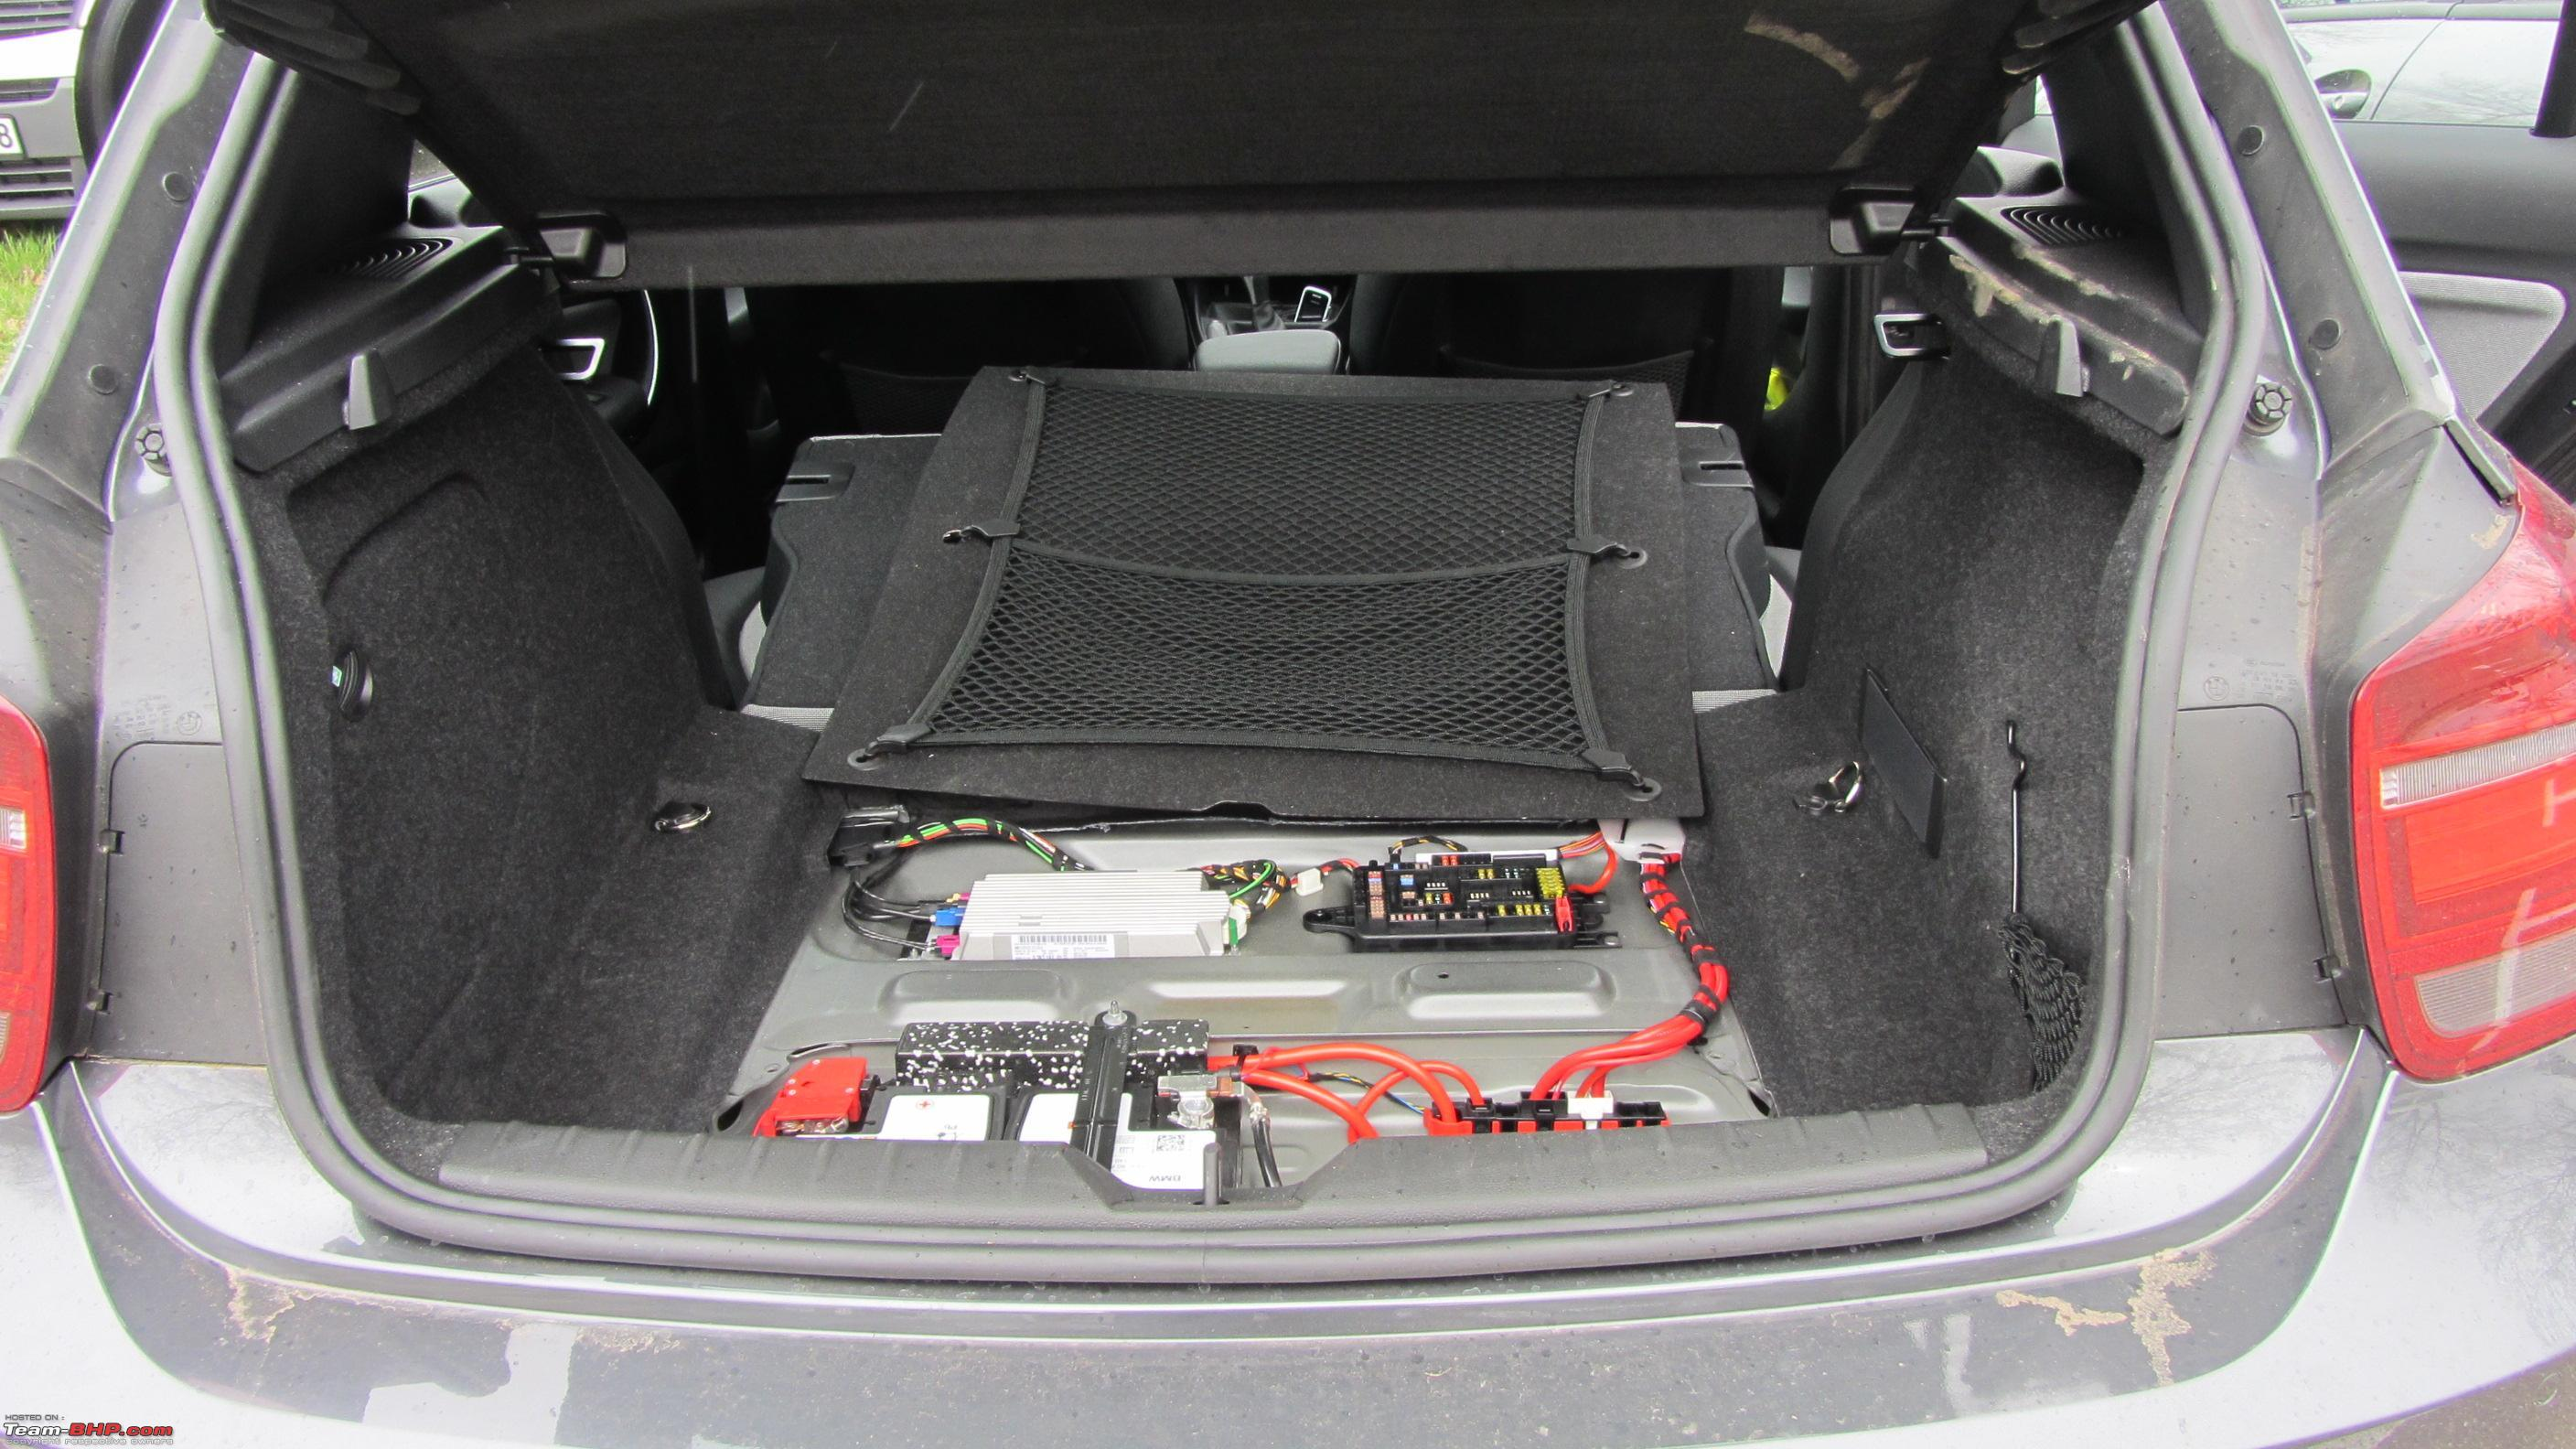 Fuse Box Bmw 6 Series Simple Guide About Wiring Diagram Grado Sr125 116i Location 26 Images